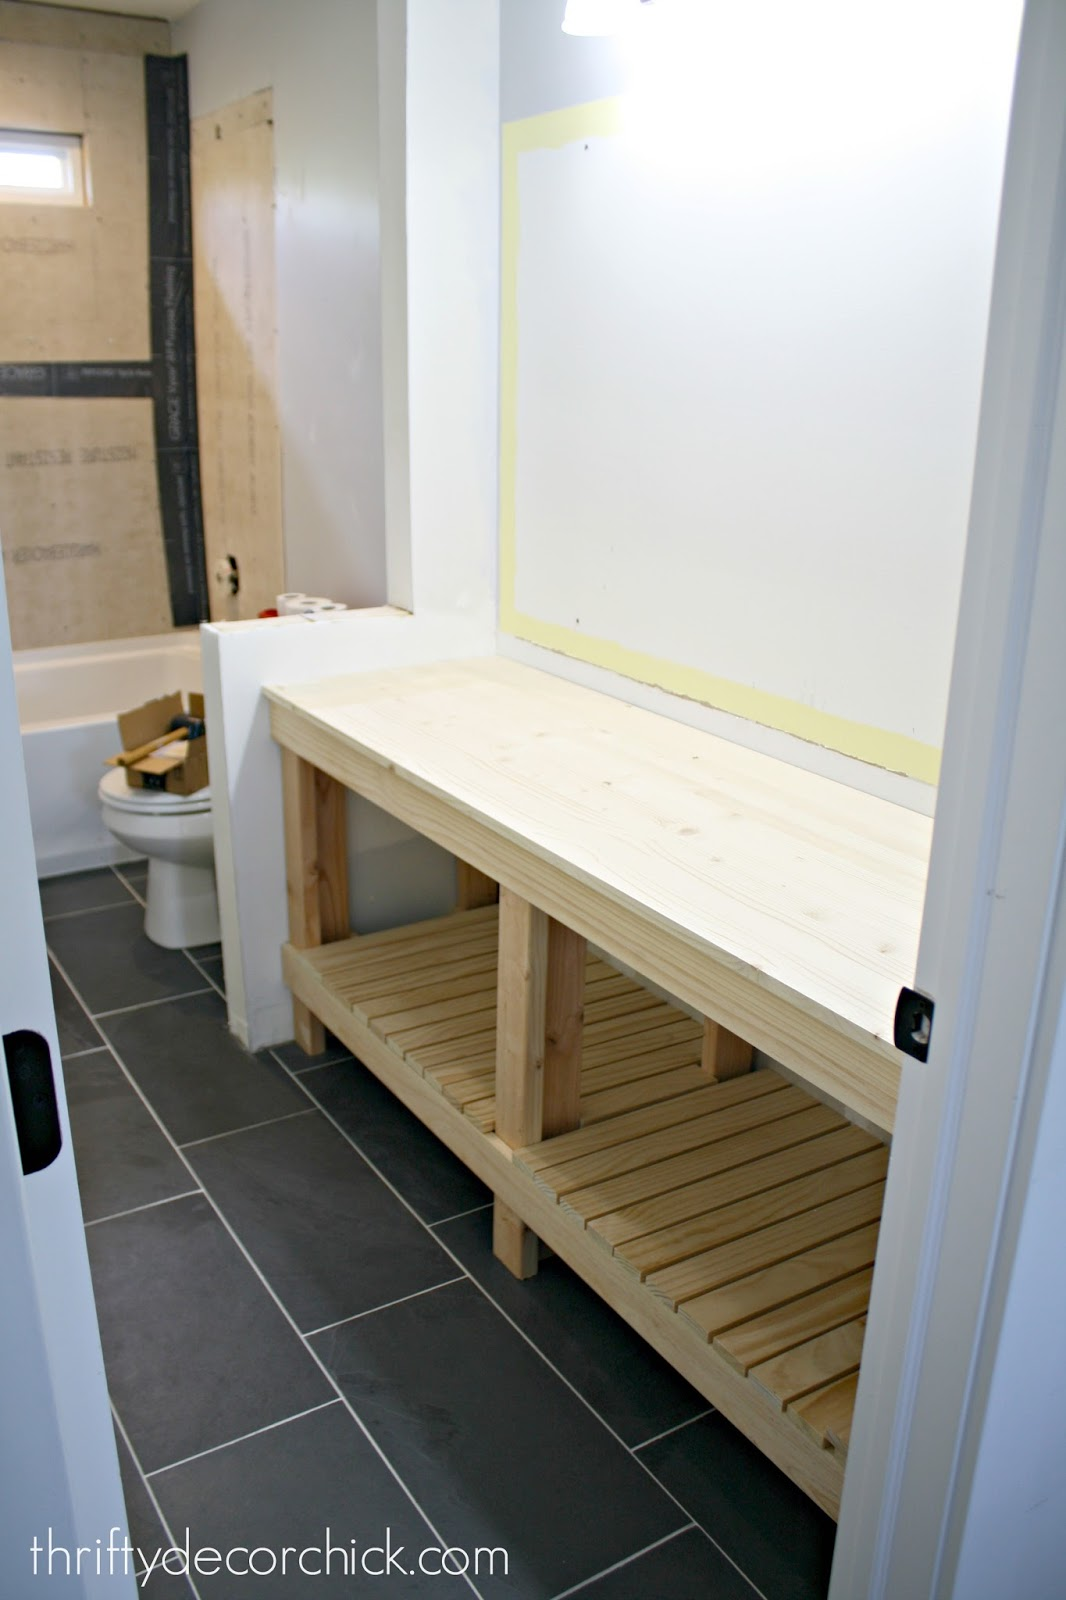 Delicieux How To Build And Stain A DIY Bathroom Vanity